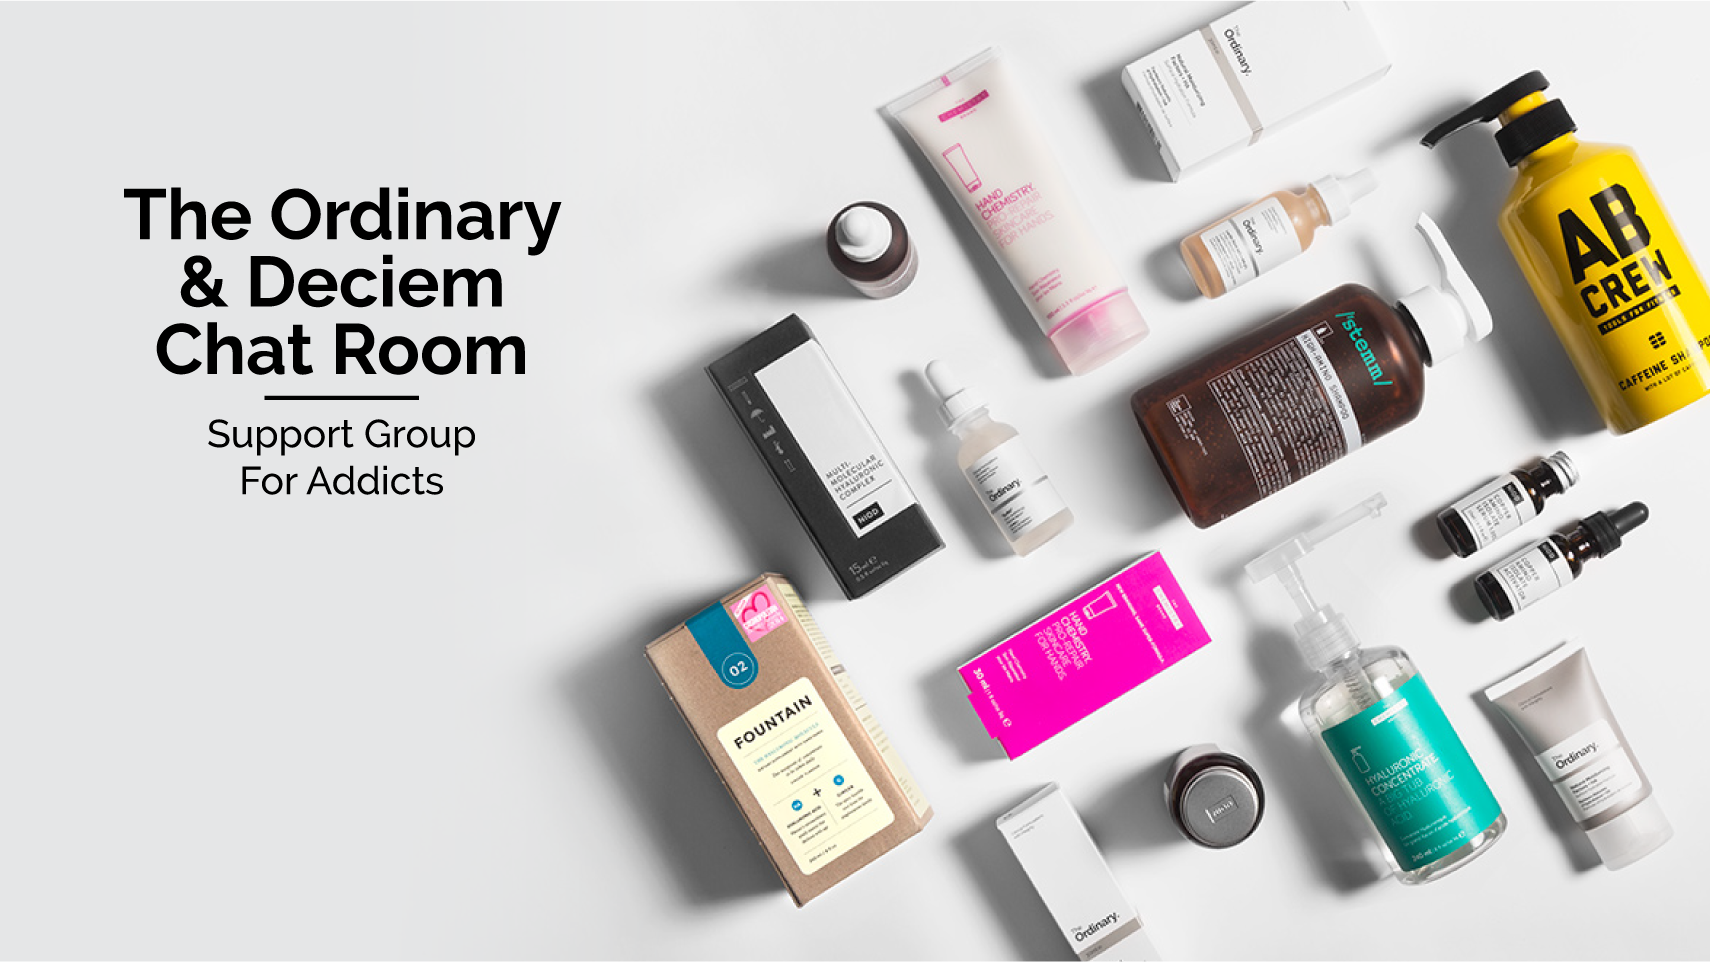 The Ordinary & Deciem Regimens & Routines For All Skin